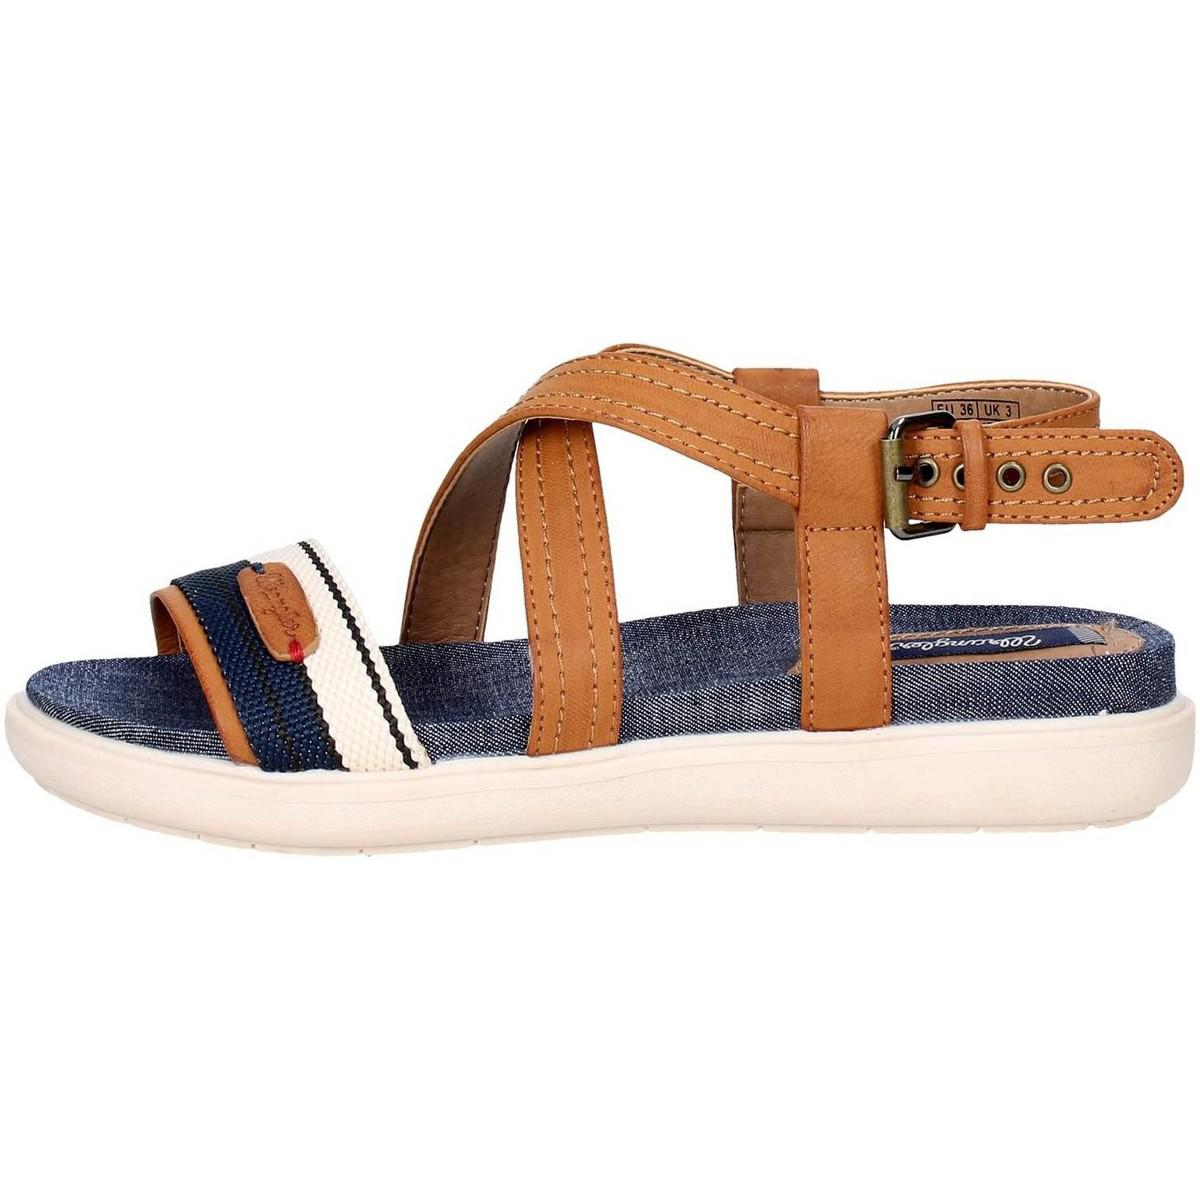 763a13a60d1f Wrangler Wl171663 Women s Sandals In Brown in Blue - Lyst